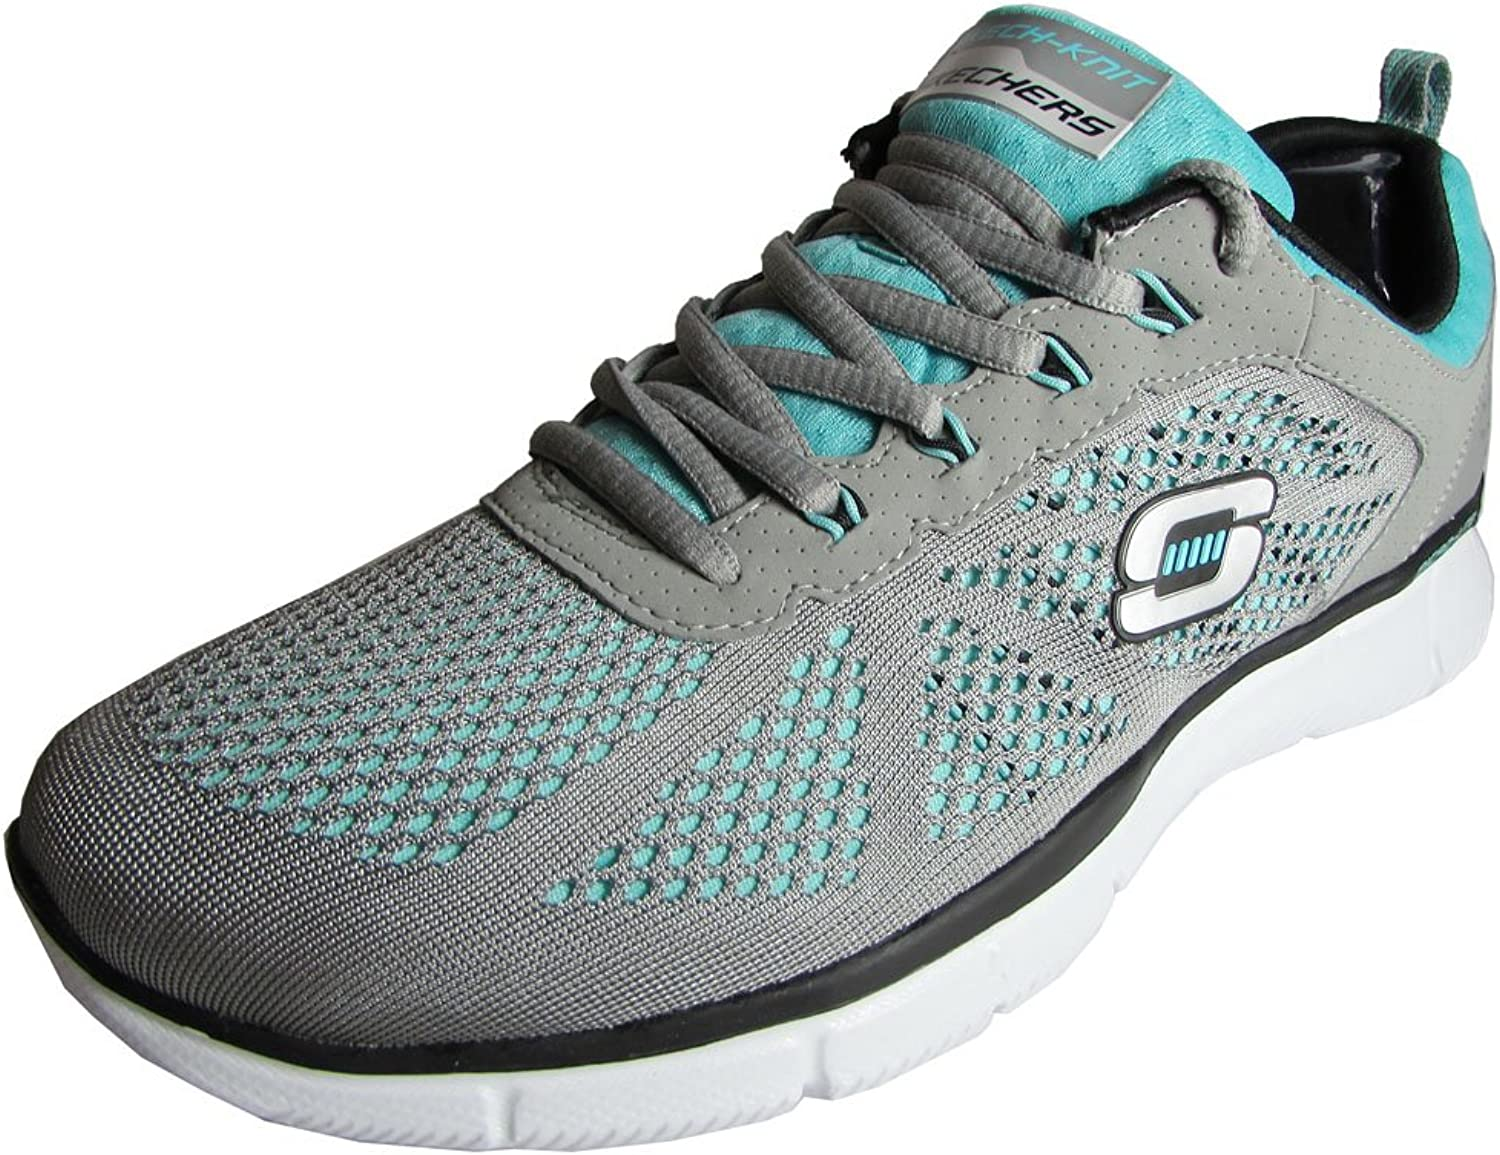 Skechers Women's Equalizer New Milestone Sneaker